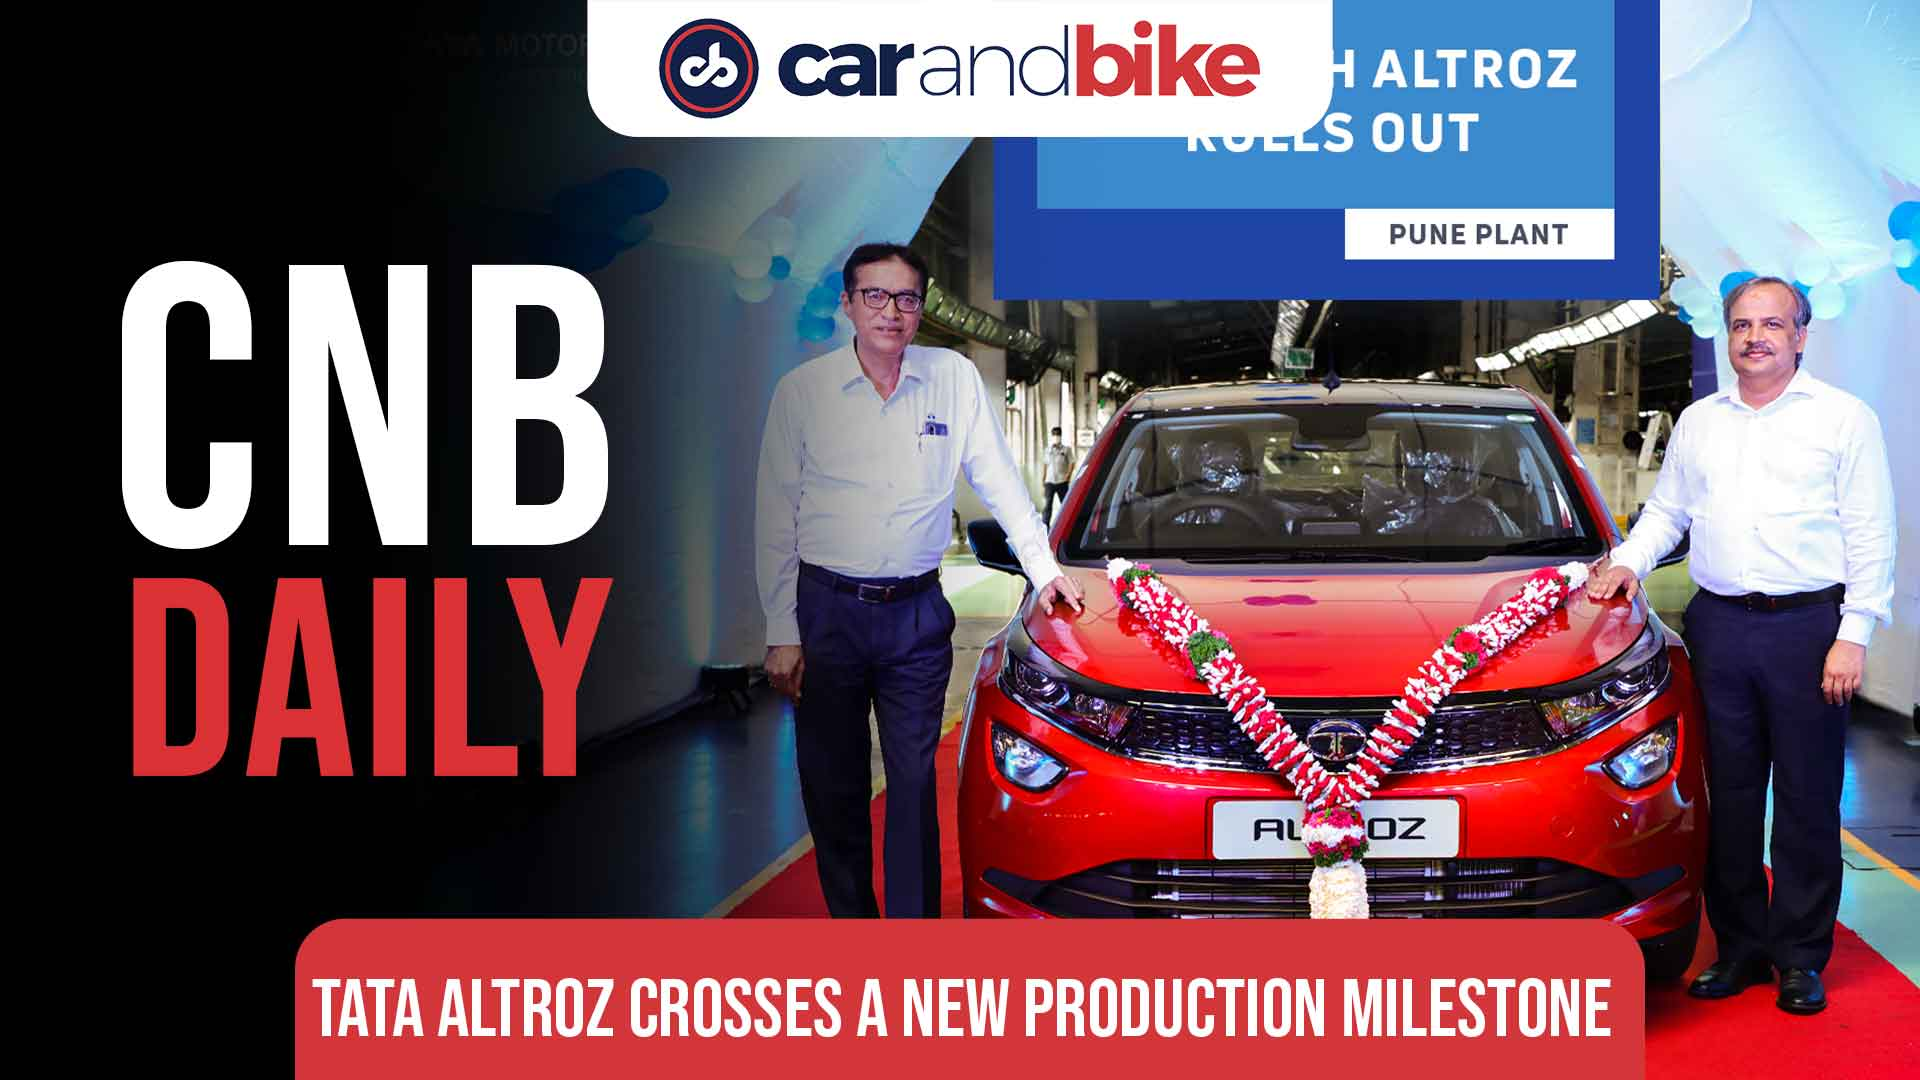 100,000 units manufactured of Tata Altroz in 20 months since launch